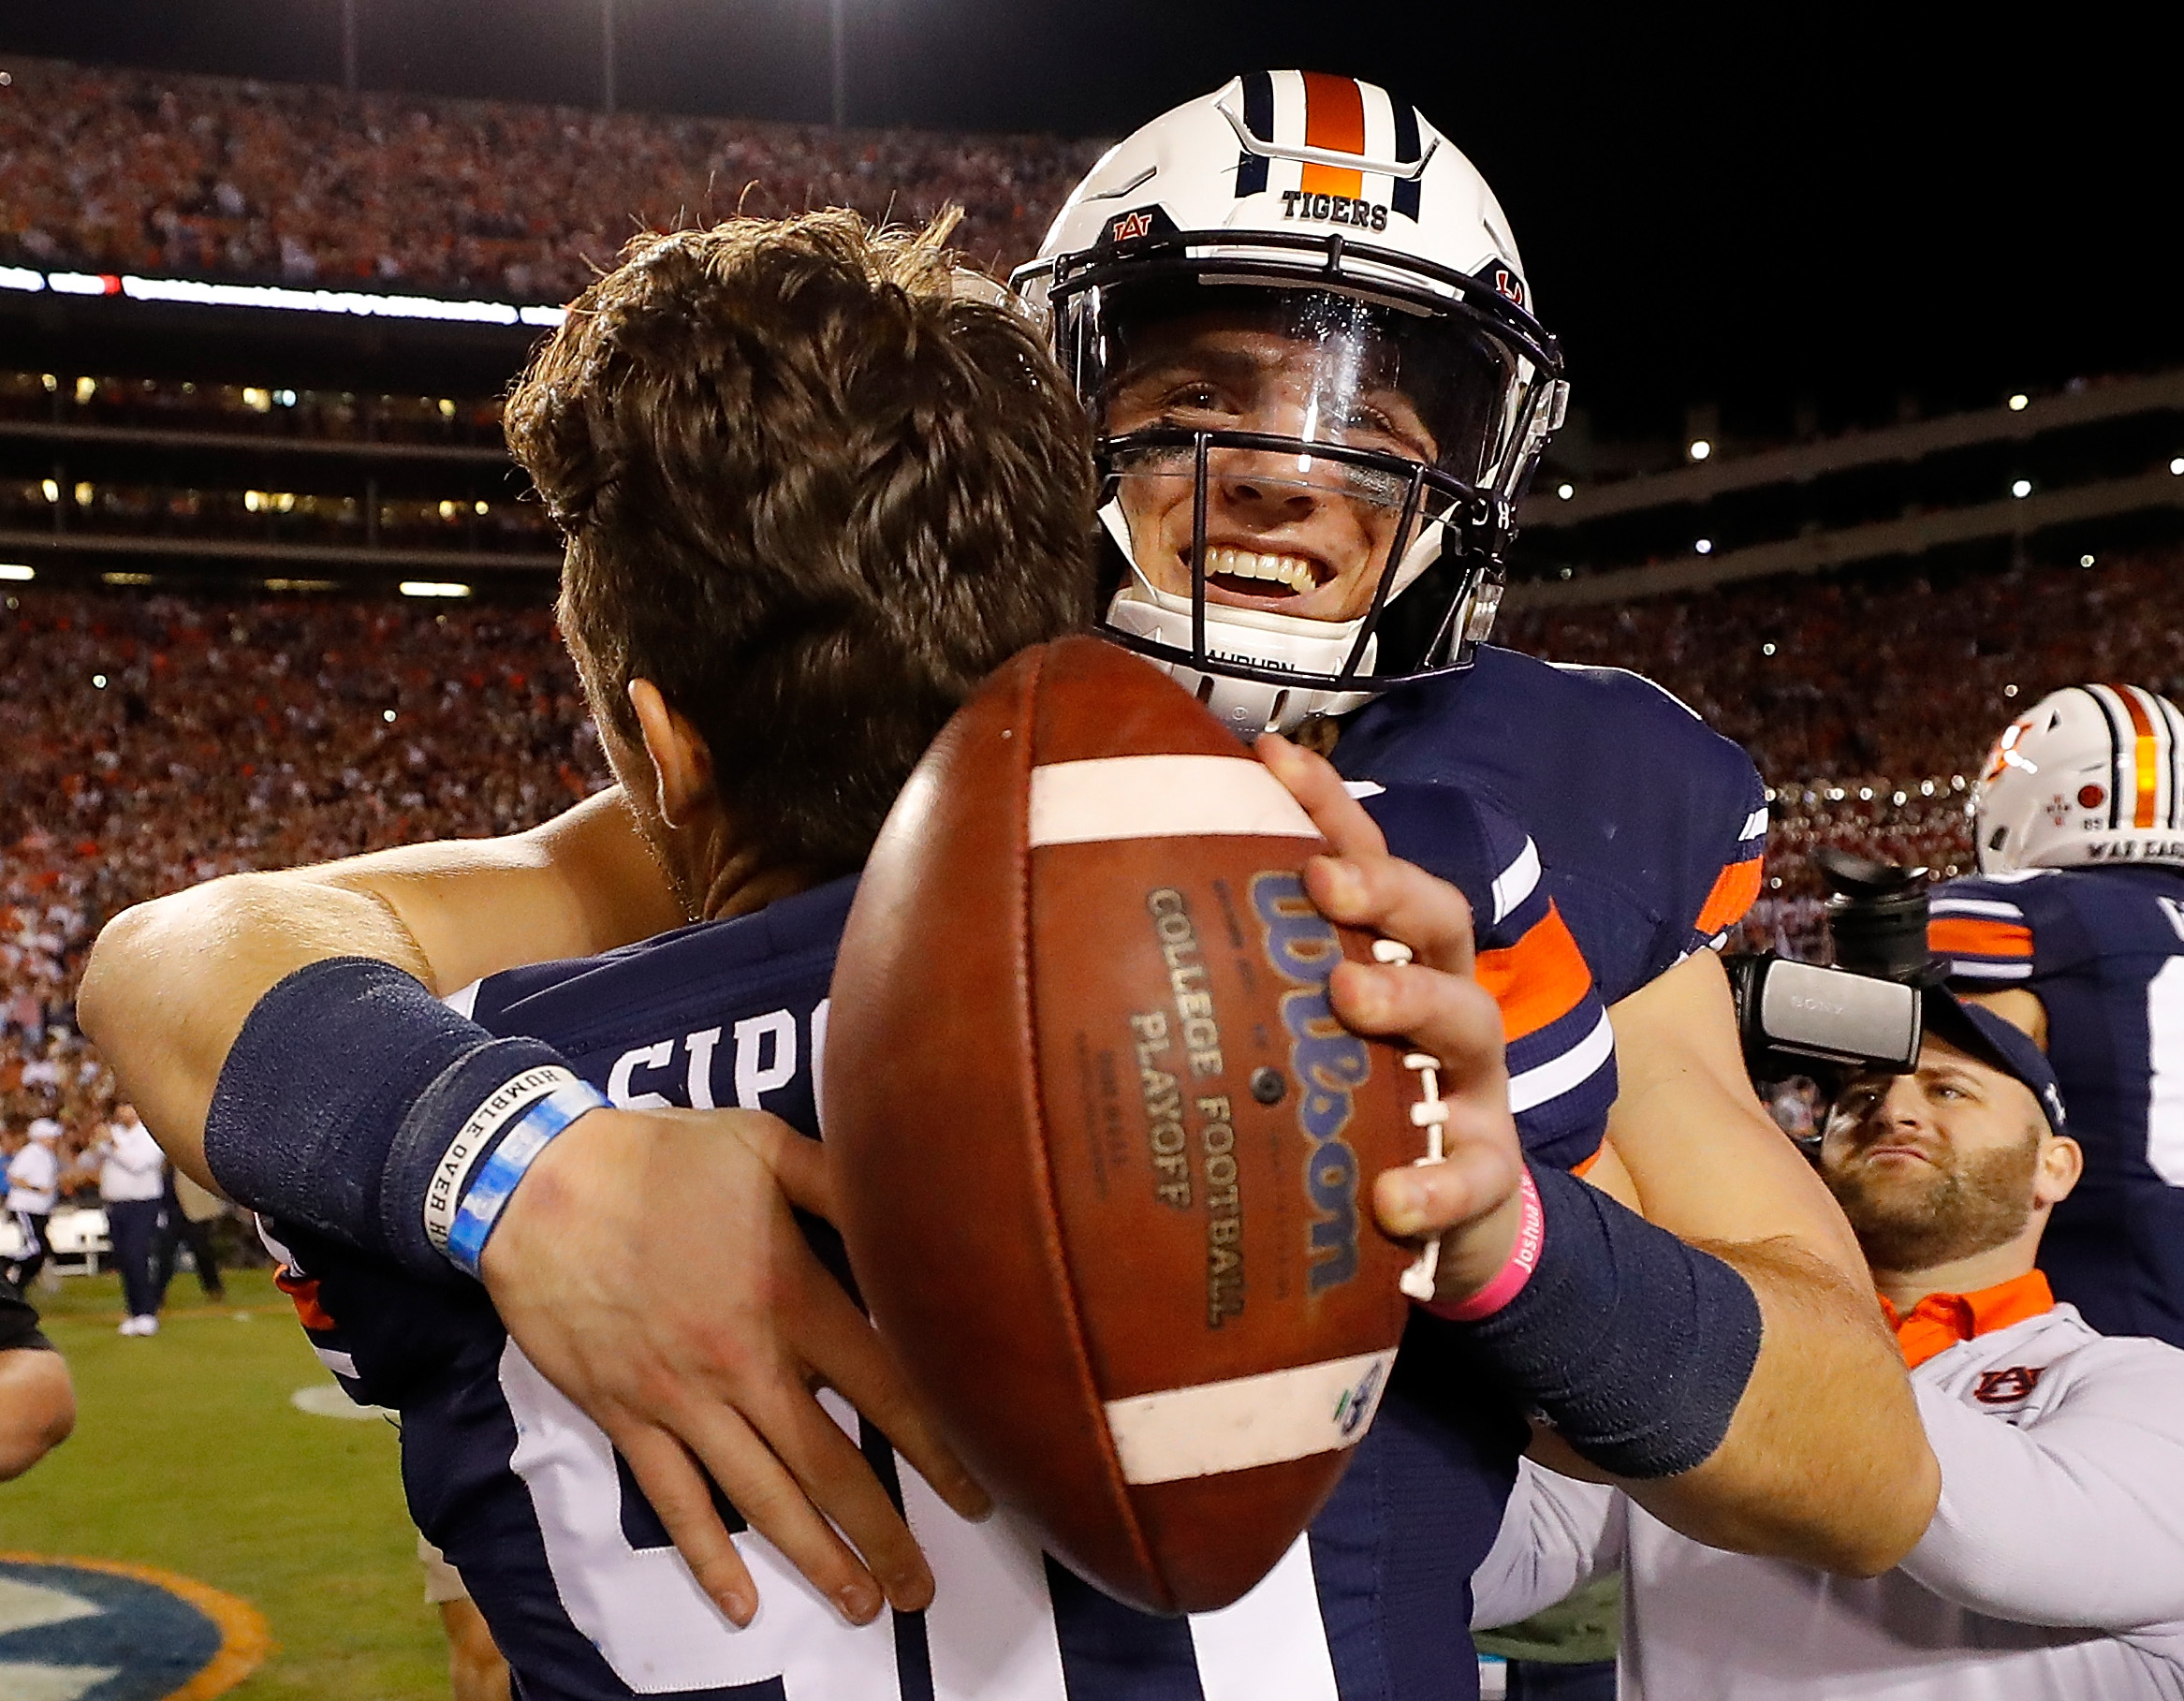 Game Times And Networks Announced For Several Of Auburn s Football Games CBS